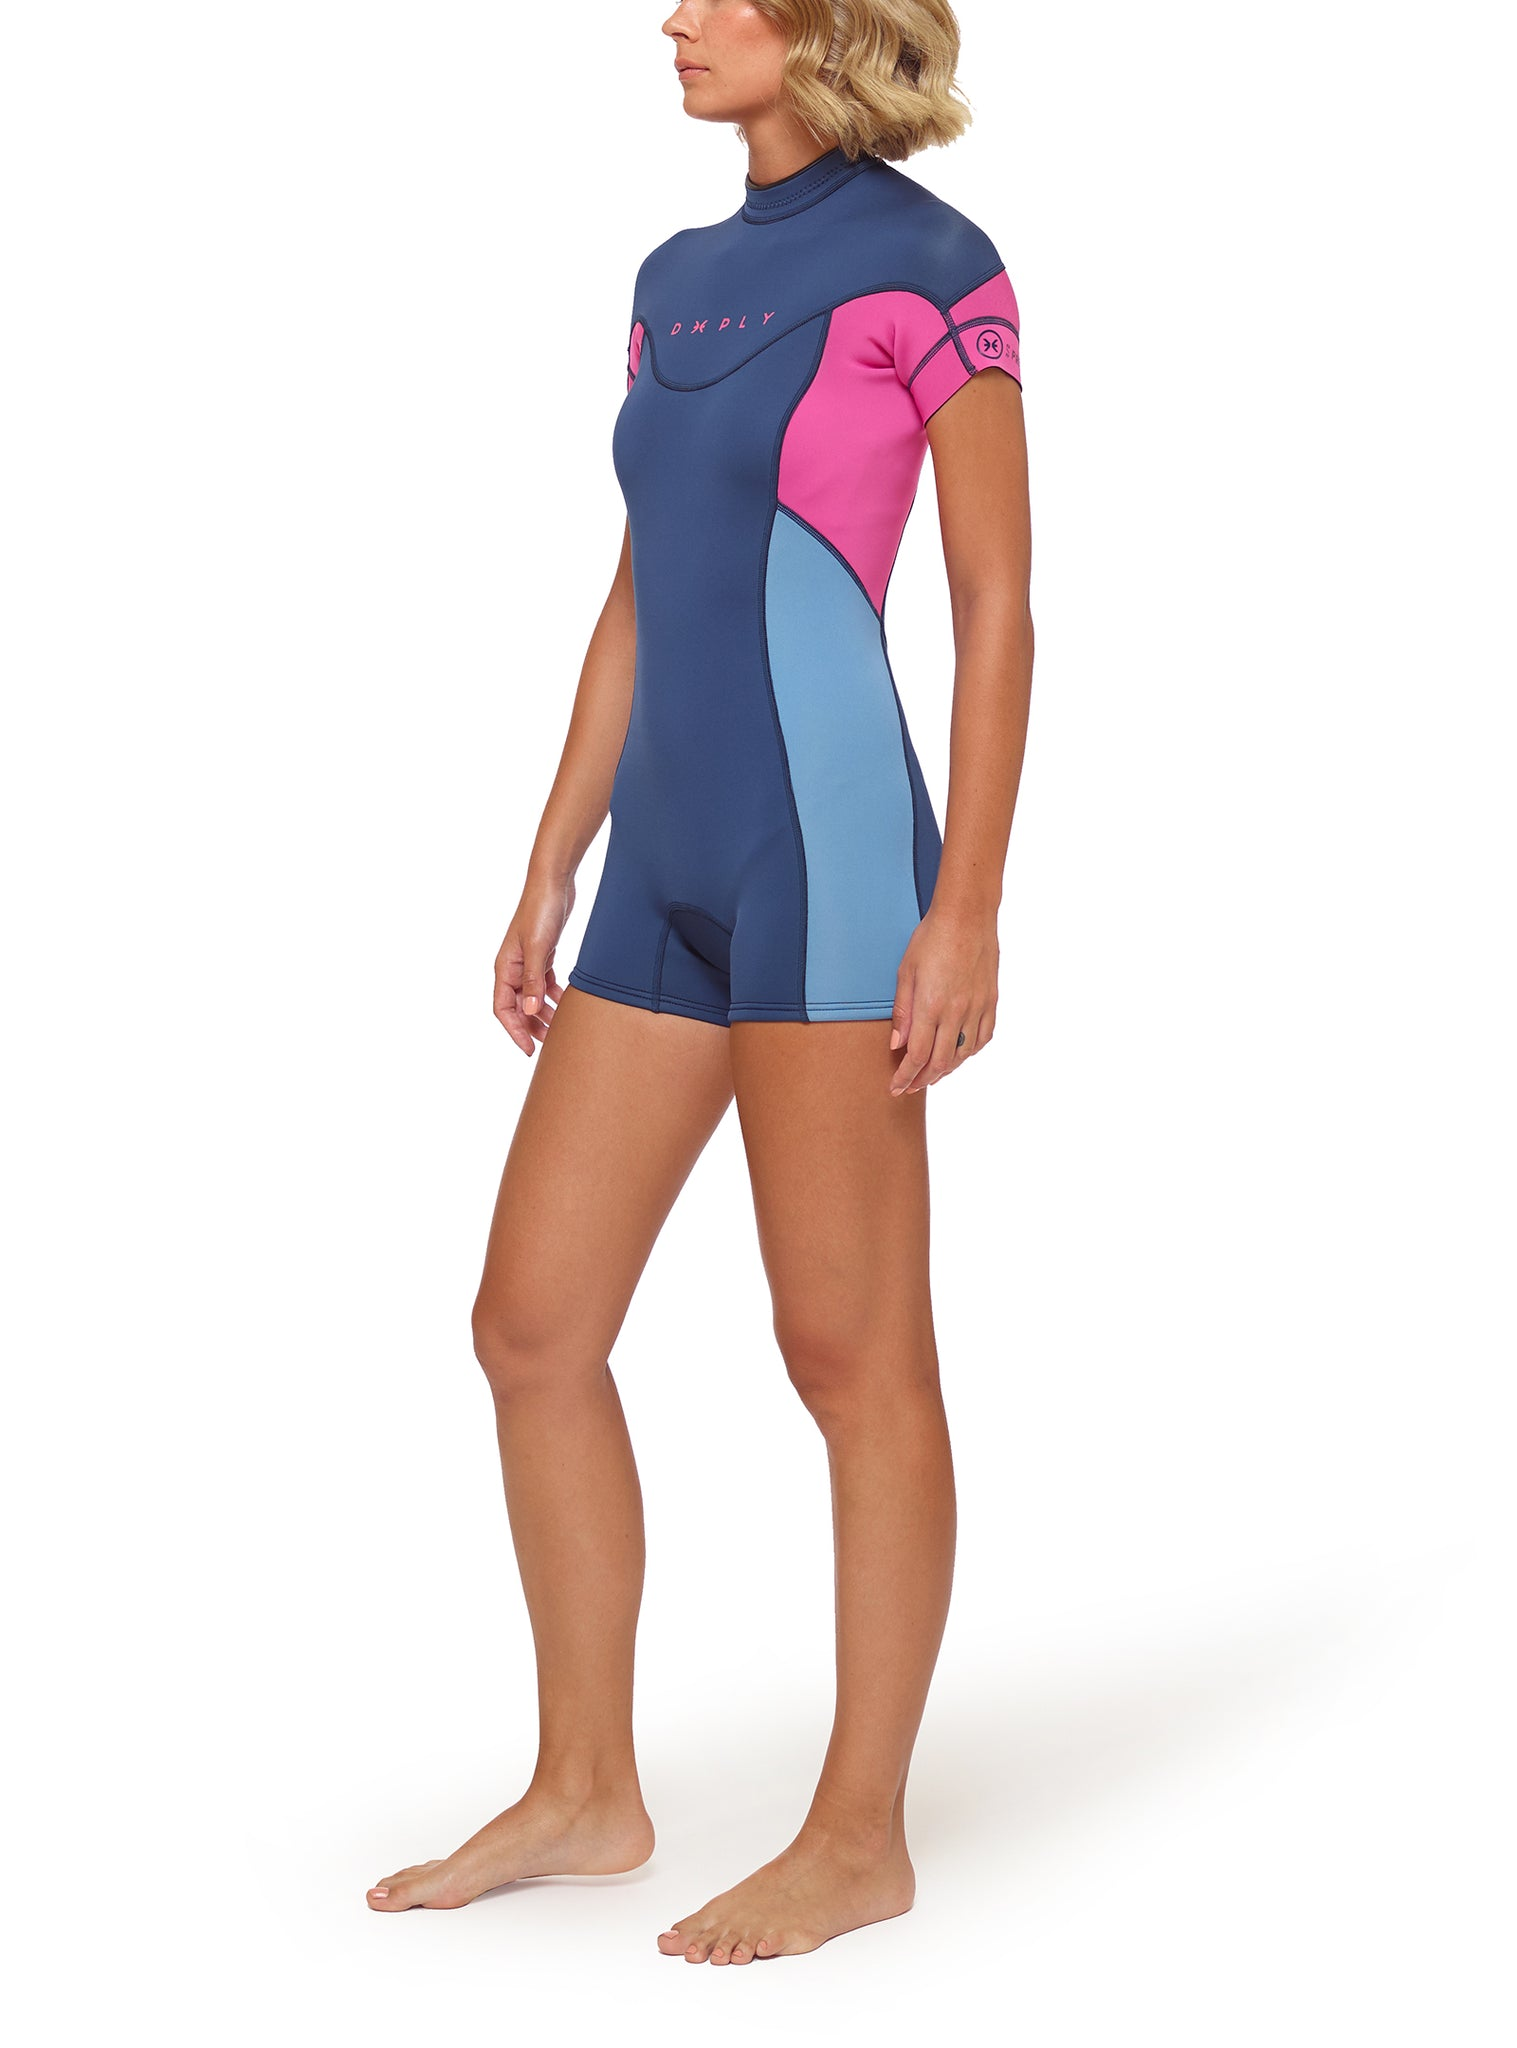 Wetsuit Woman Premium 2/2 Back Zip Blue